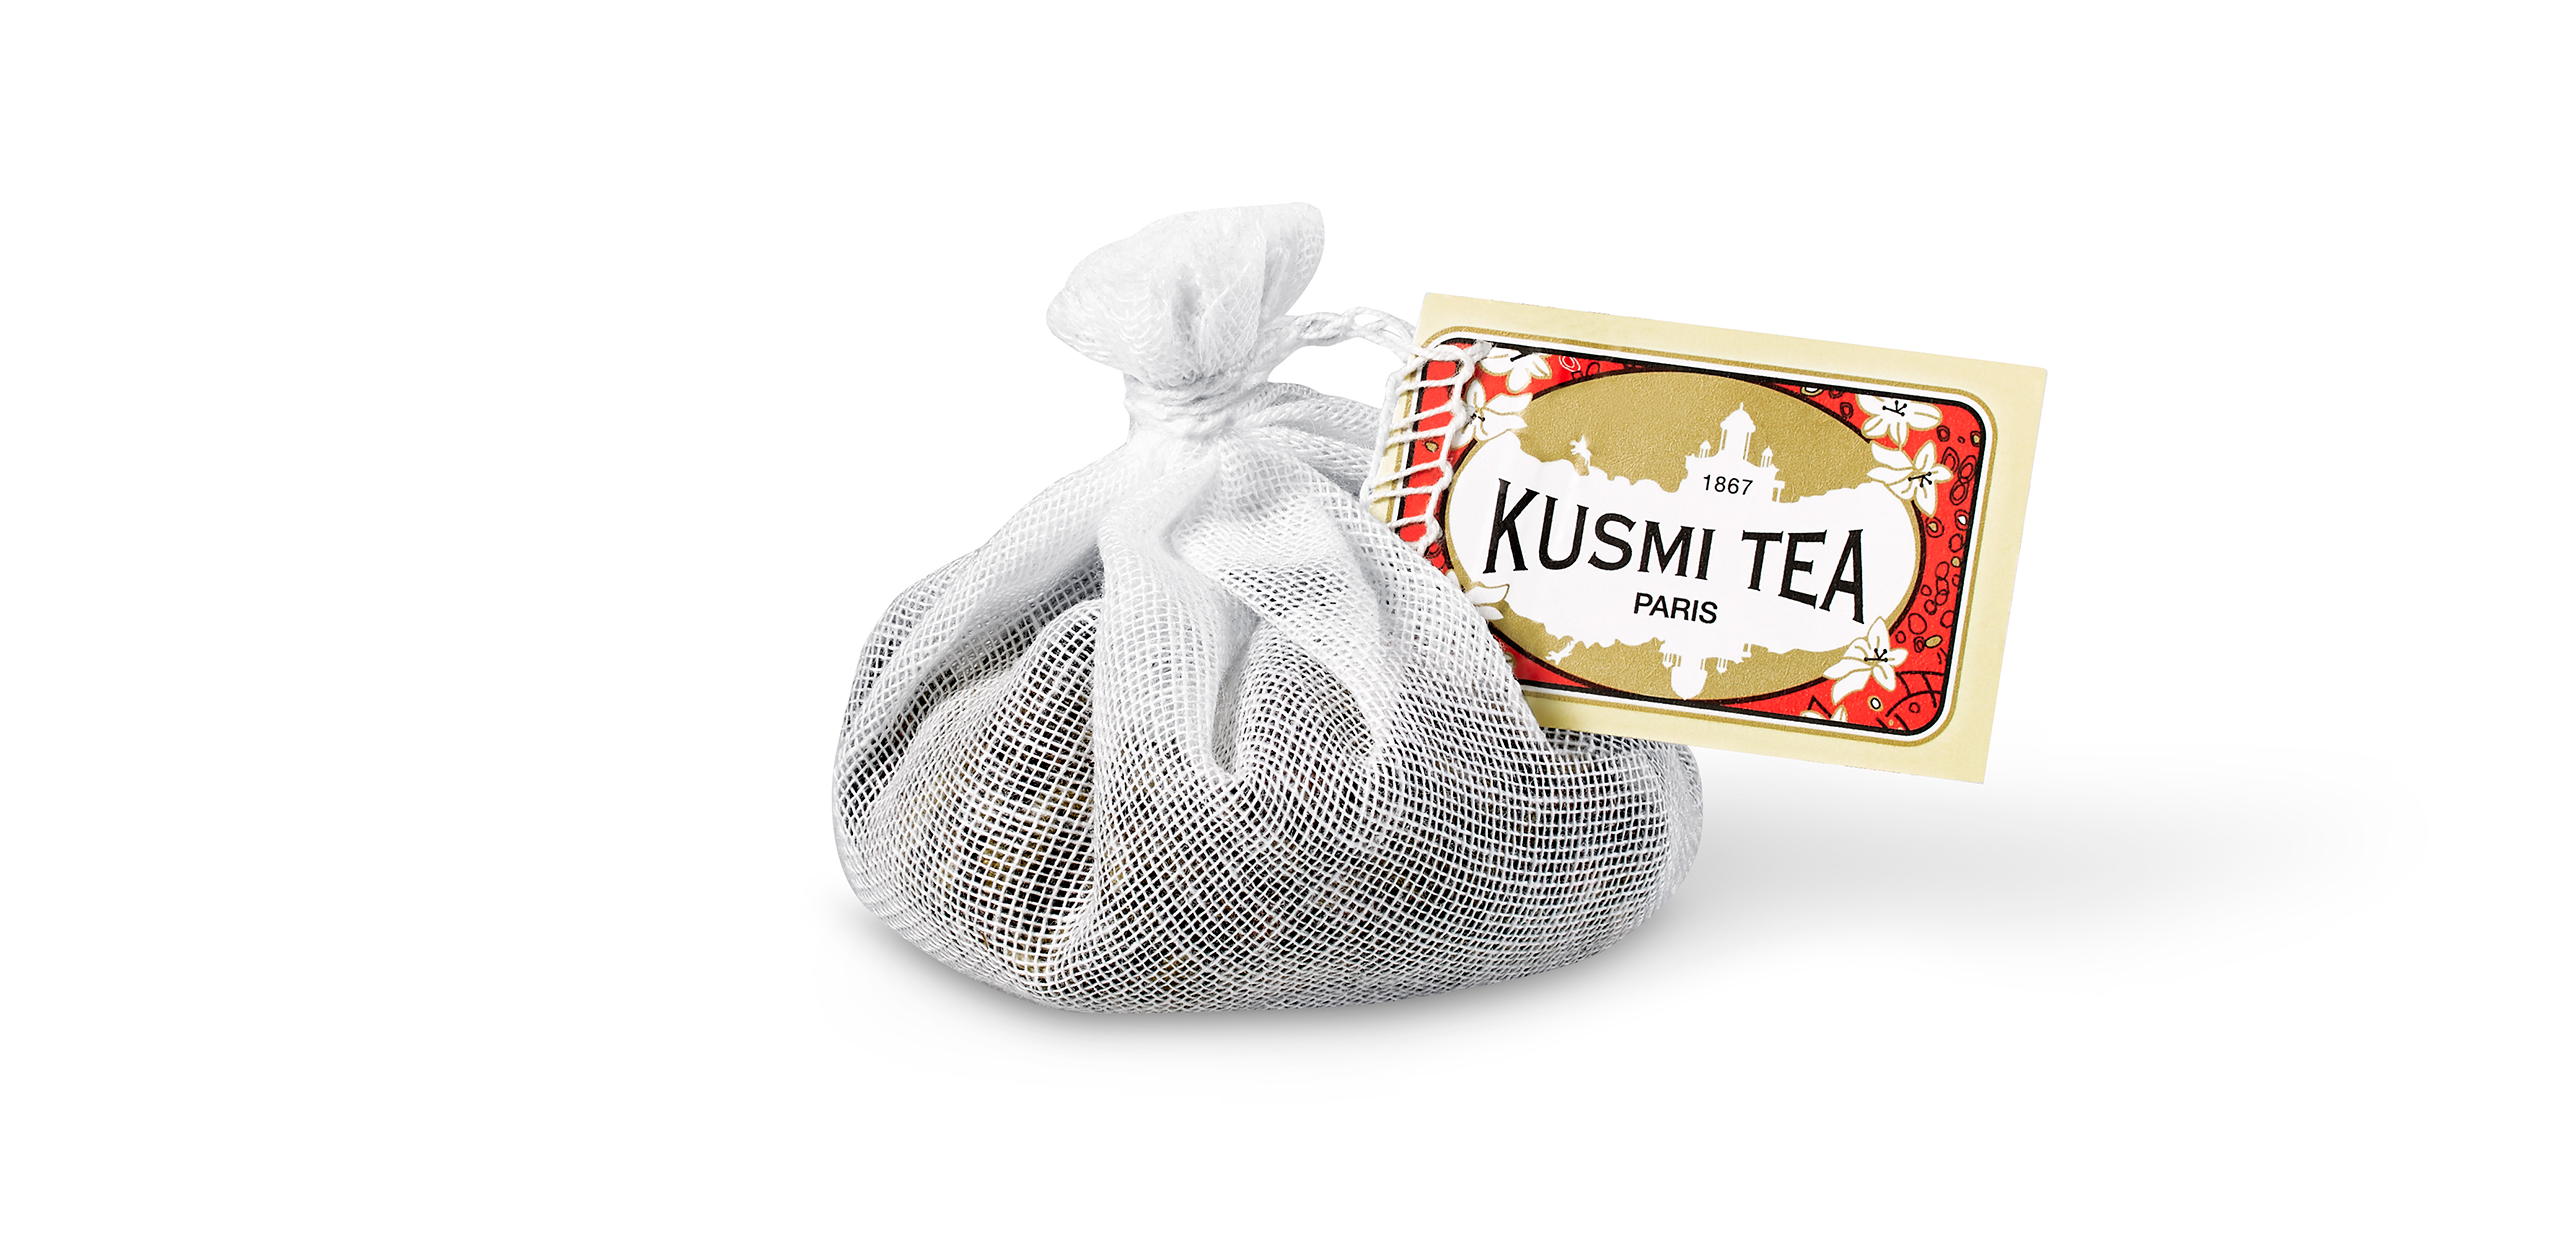 Commercial photography for Kusmi Tea of a tea bag. Photograph retouched by Maria Queralt